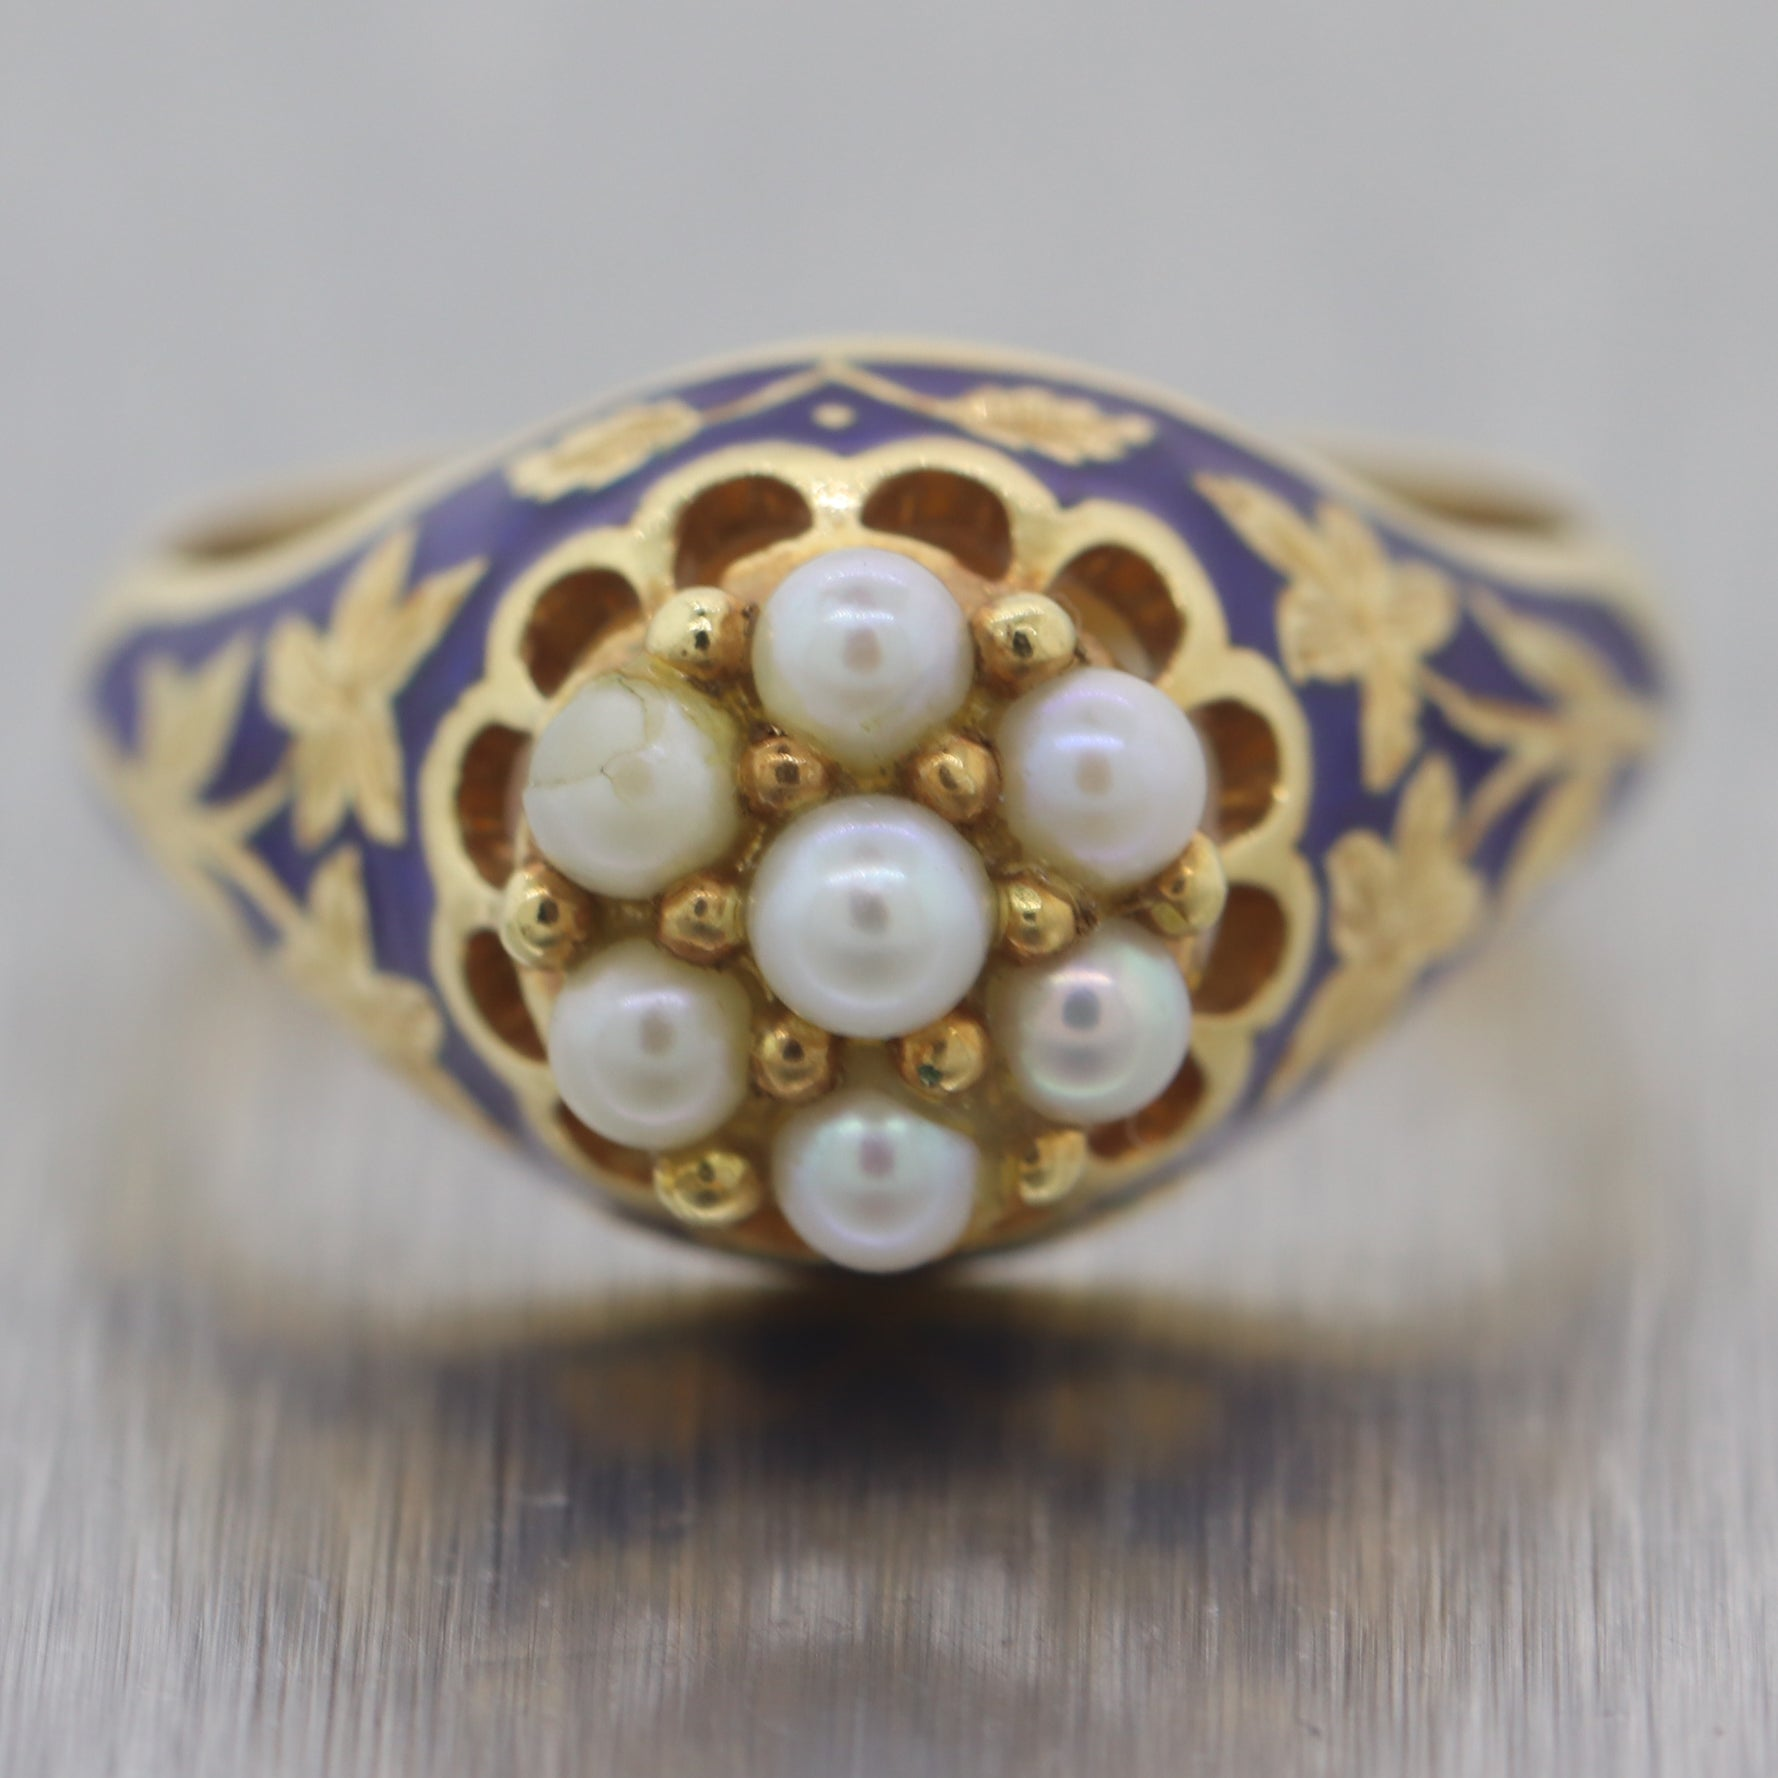 Antique Victorian 18k Yellow Gold Enamel & Pearl Ring